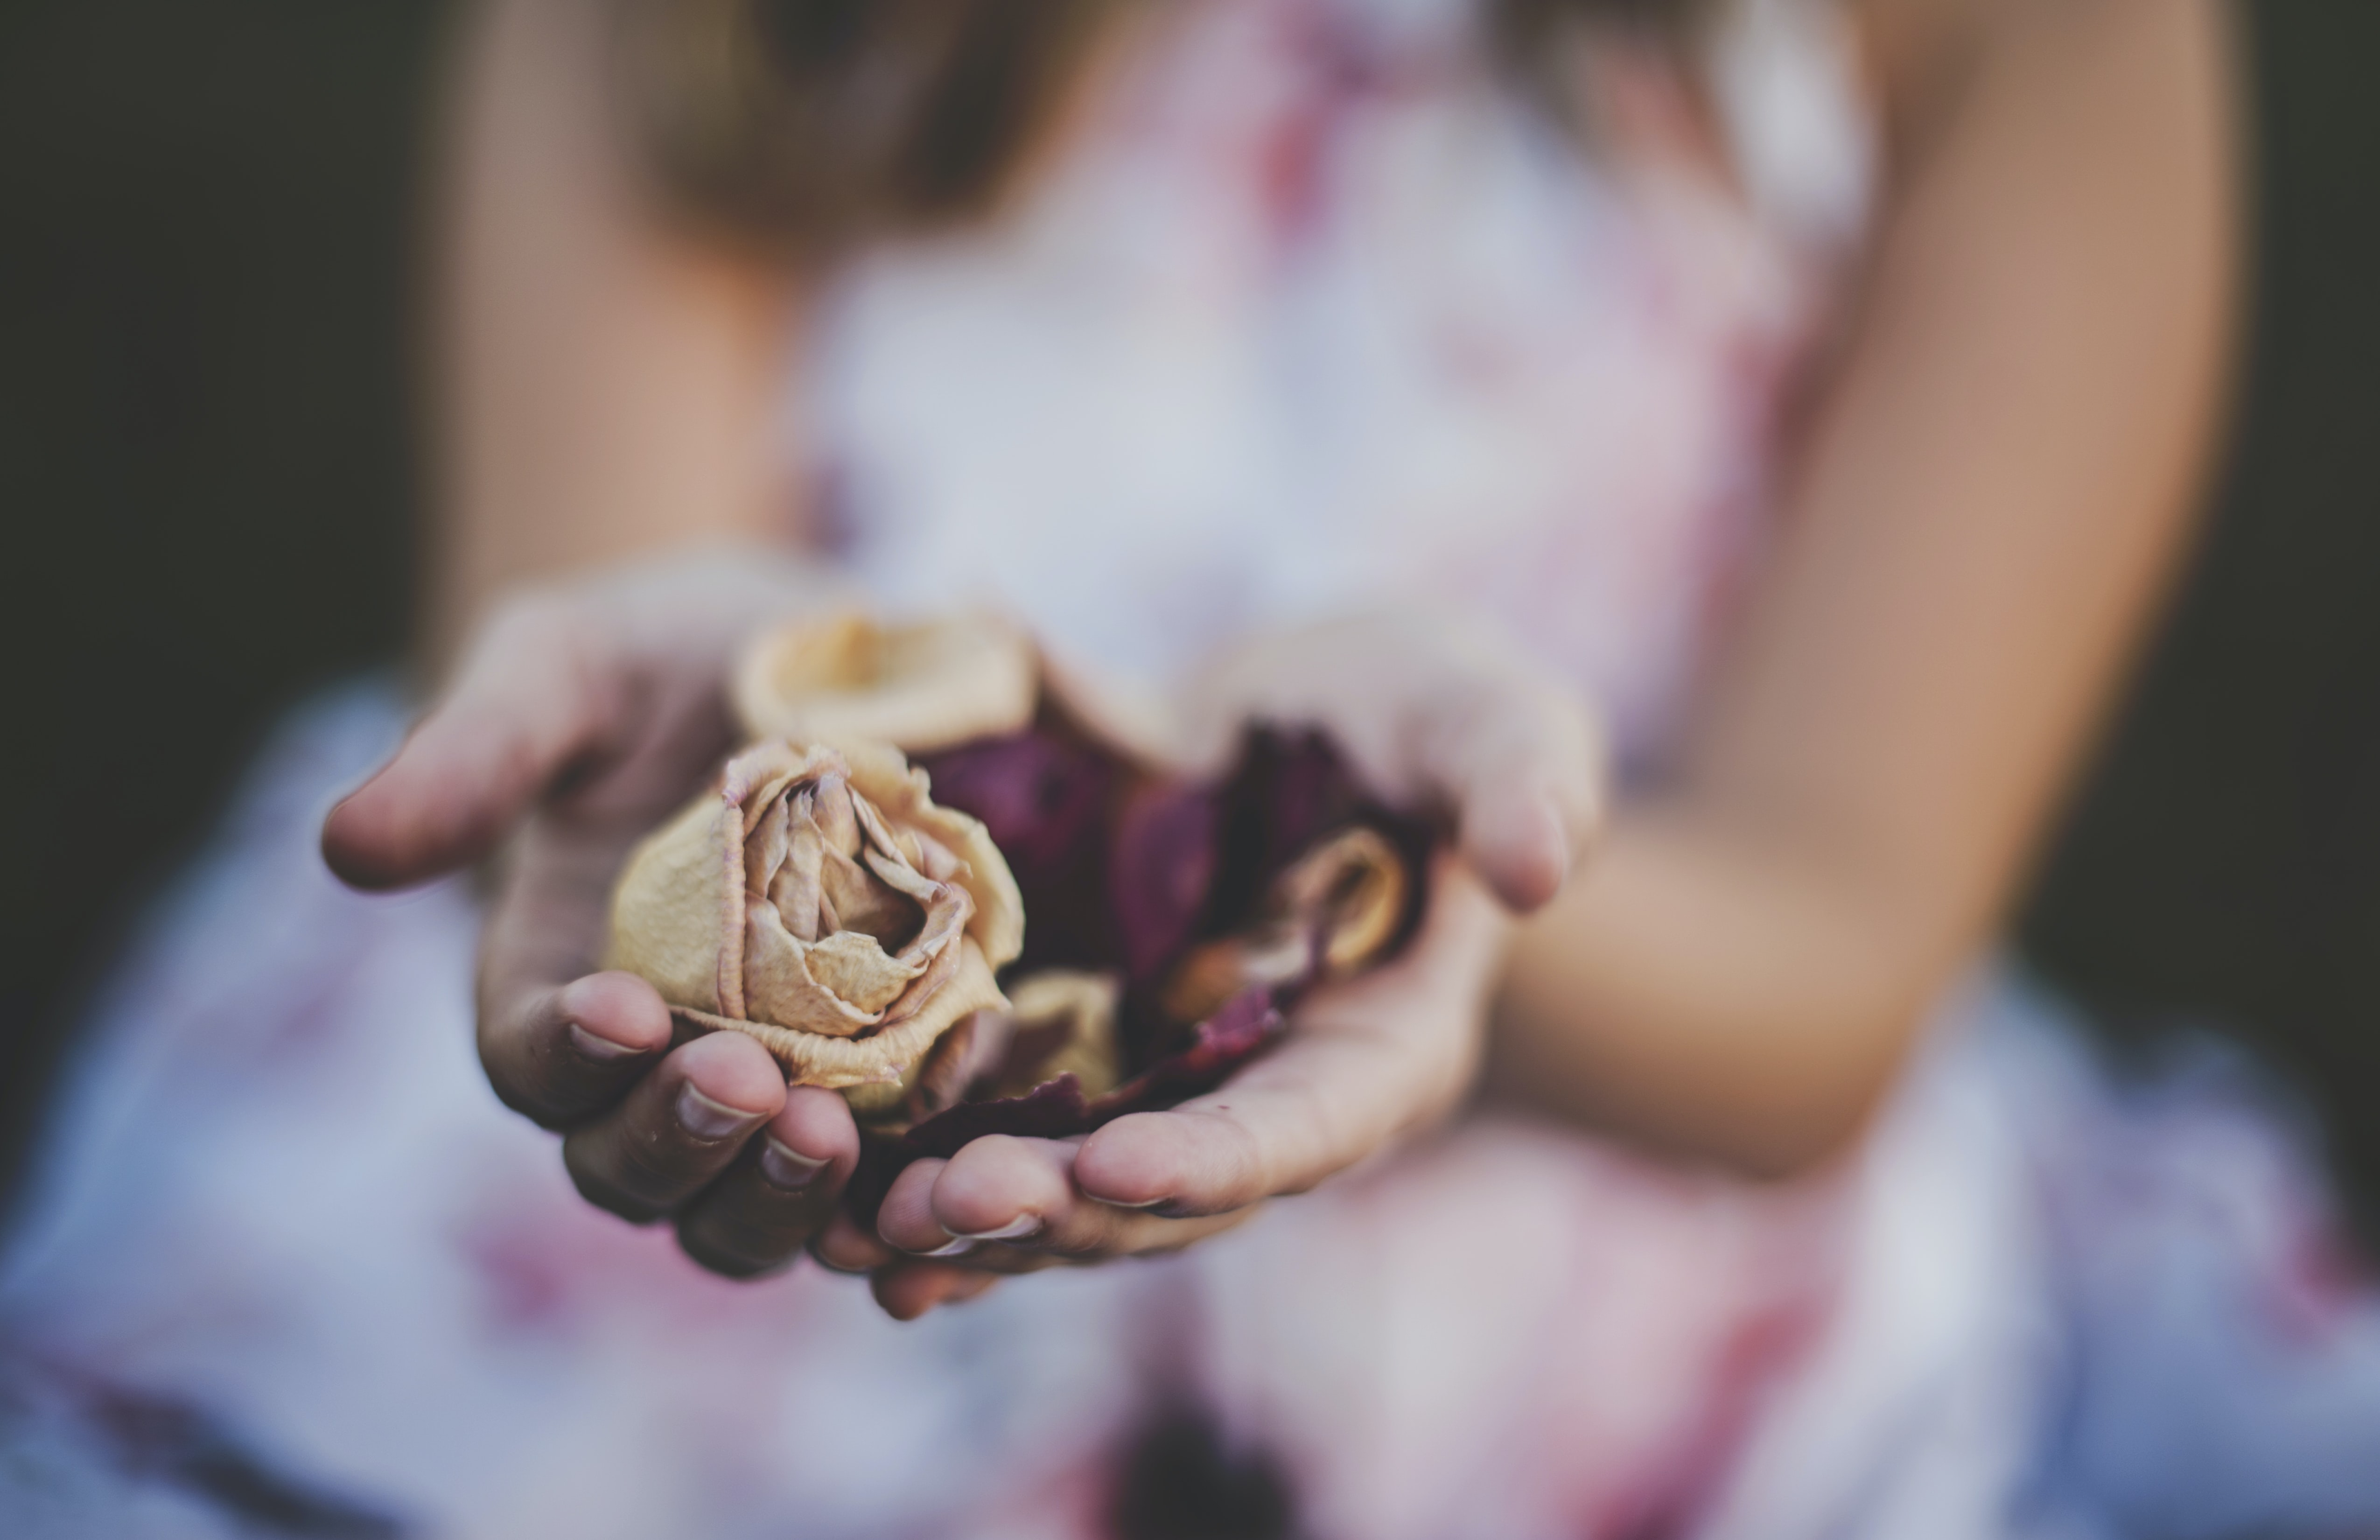 A woman's cupped hands holding a dried rose and other flower petals